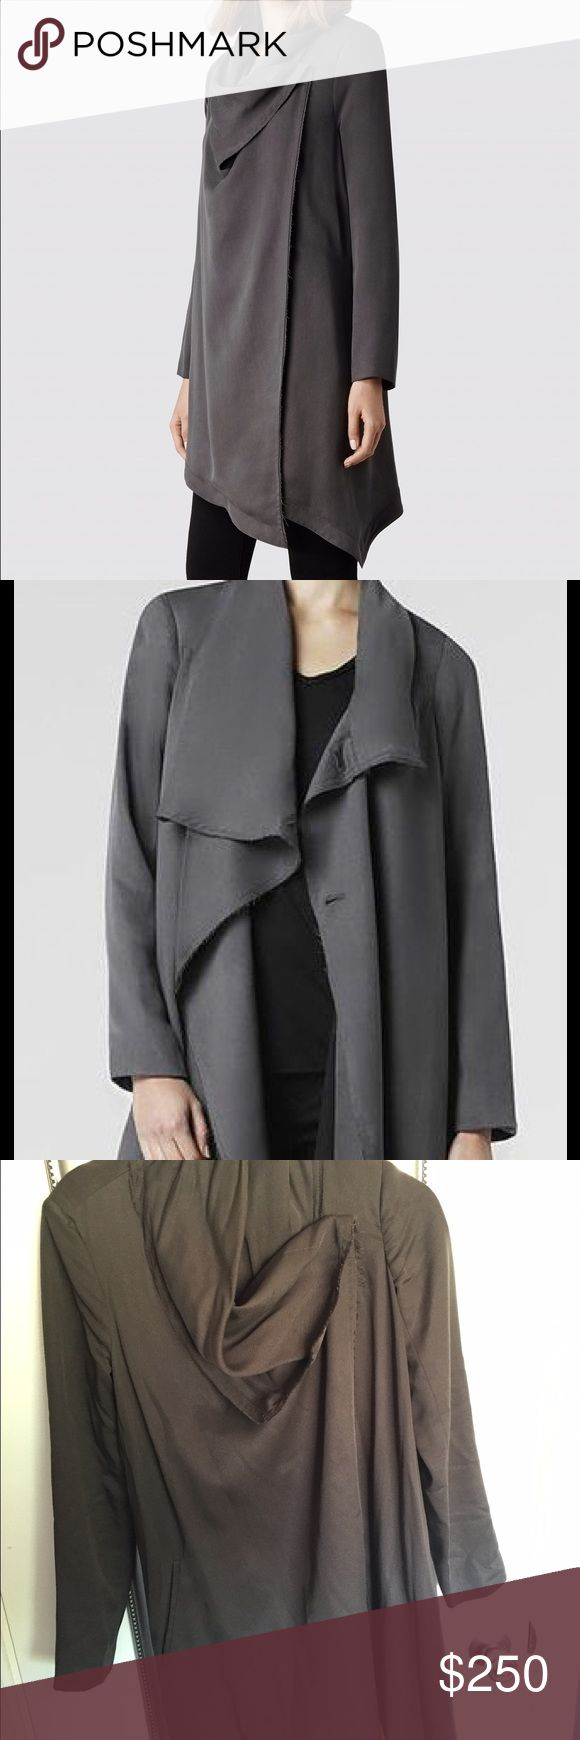 AllSaints Coat Size 4. Grey. Small stains. All Saints Jackets & Coats Trench Coats